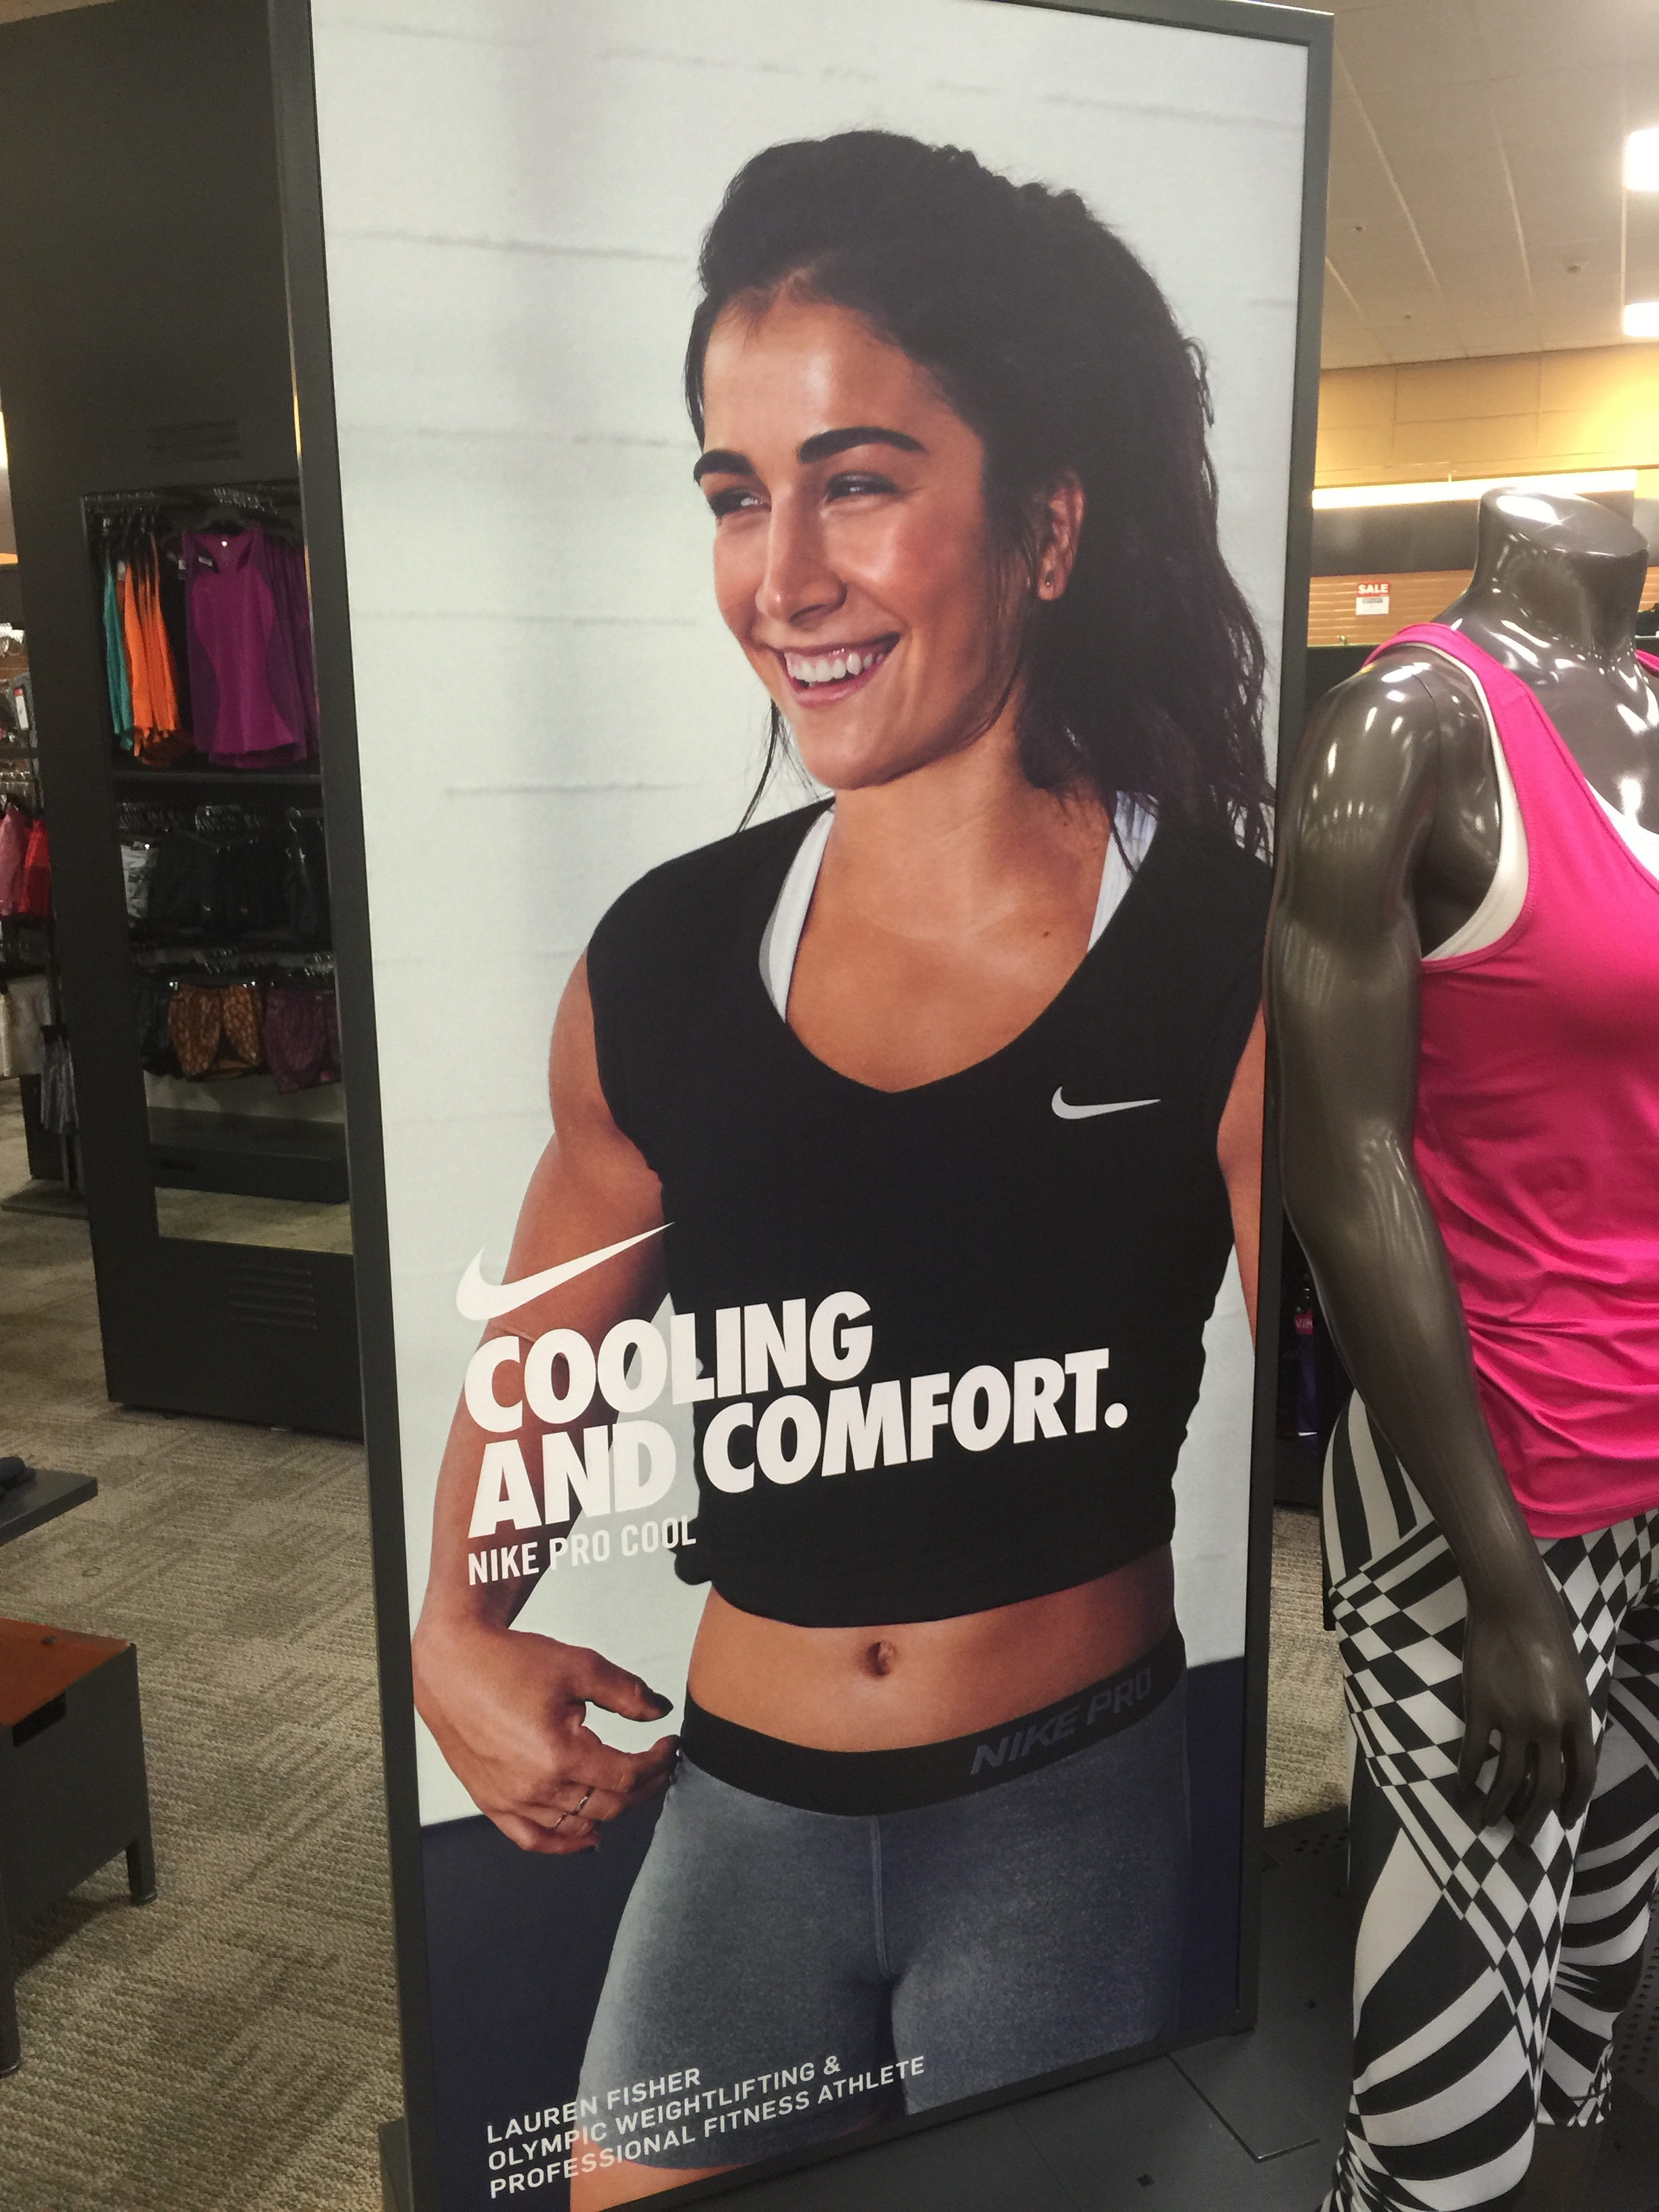 This was a Nike ad in Sport's Chalet. CrossFitter's infiltrating  the mainstream!